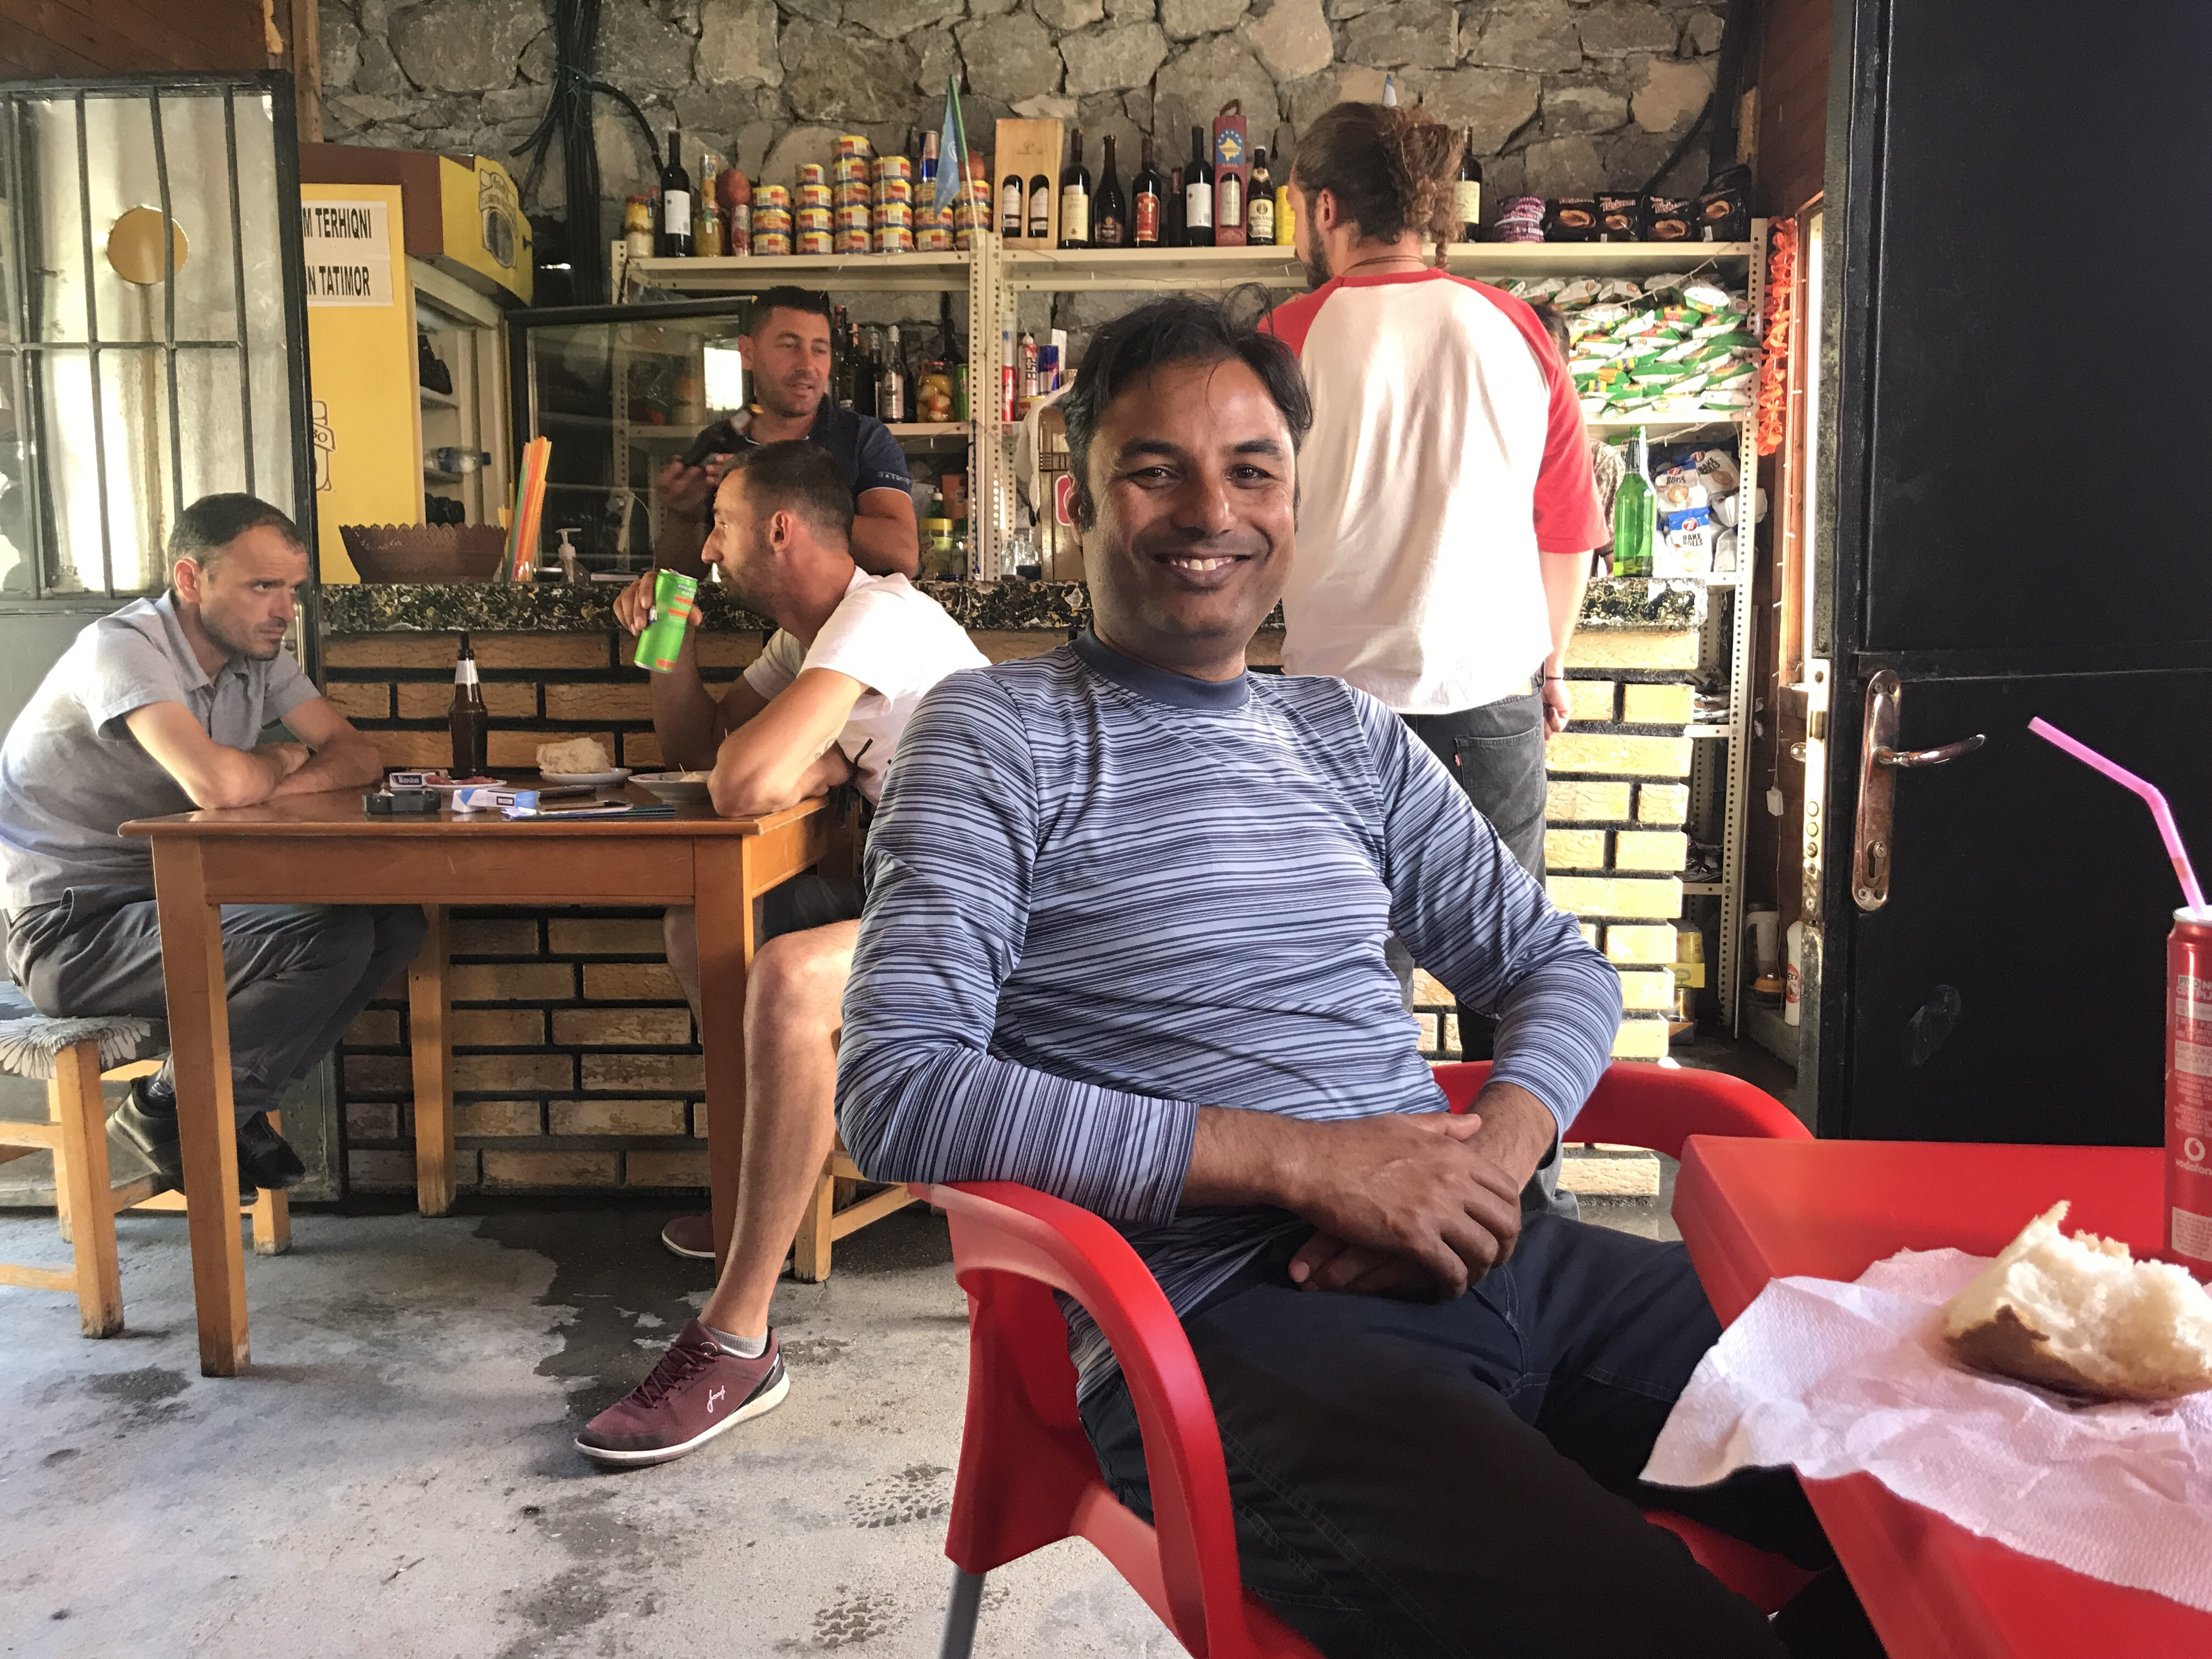 We decide to spend the rest of the time in the little rustic cafe. The crew and other passengers get their lunch of bread, cheese, sausage and soda. The boys were super friendly and we tried to converse with the one that knew some English. Most of them live around the lake and captain lives in Shkoder.